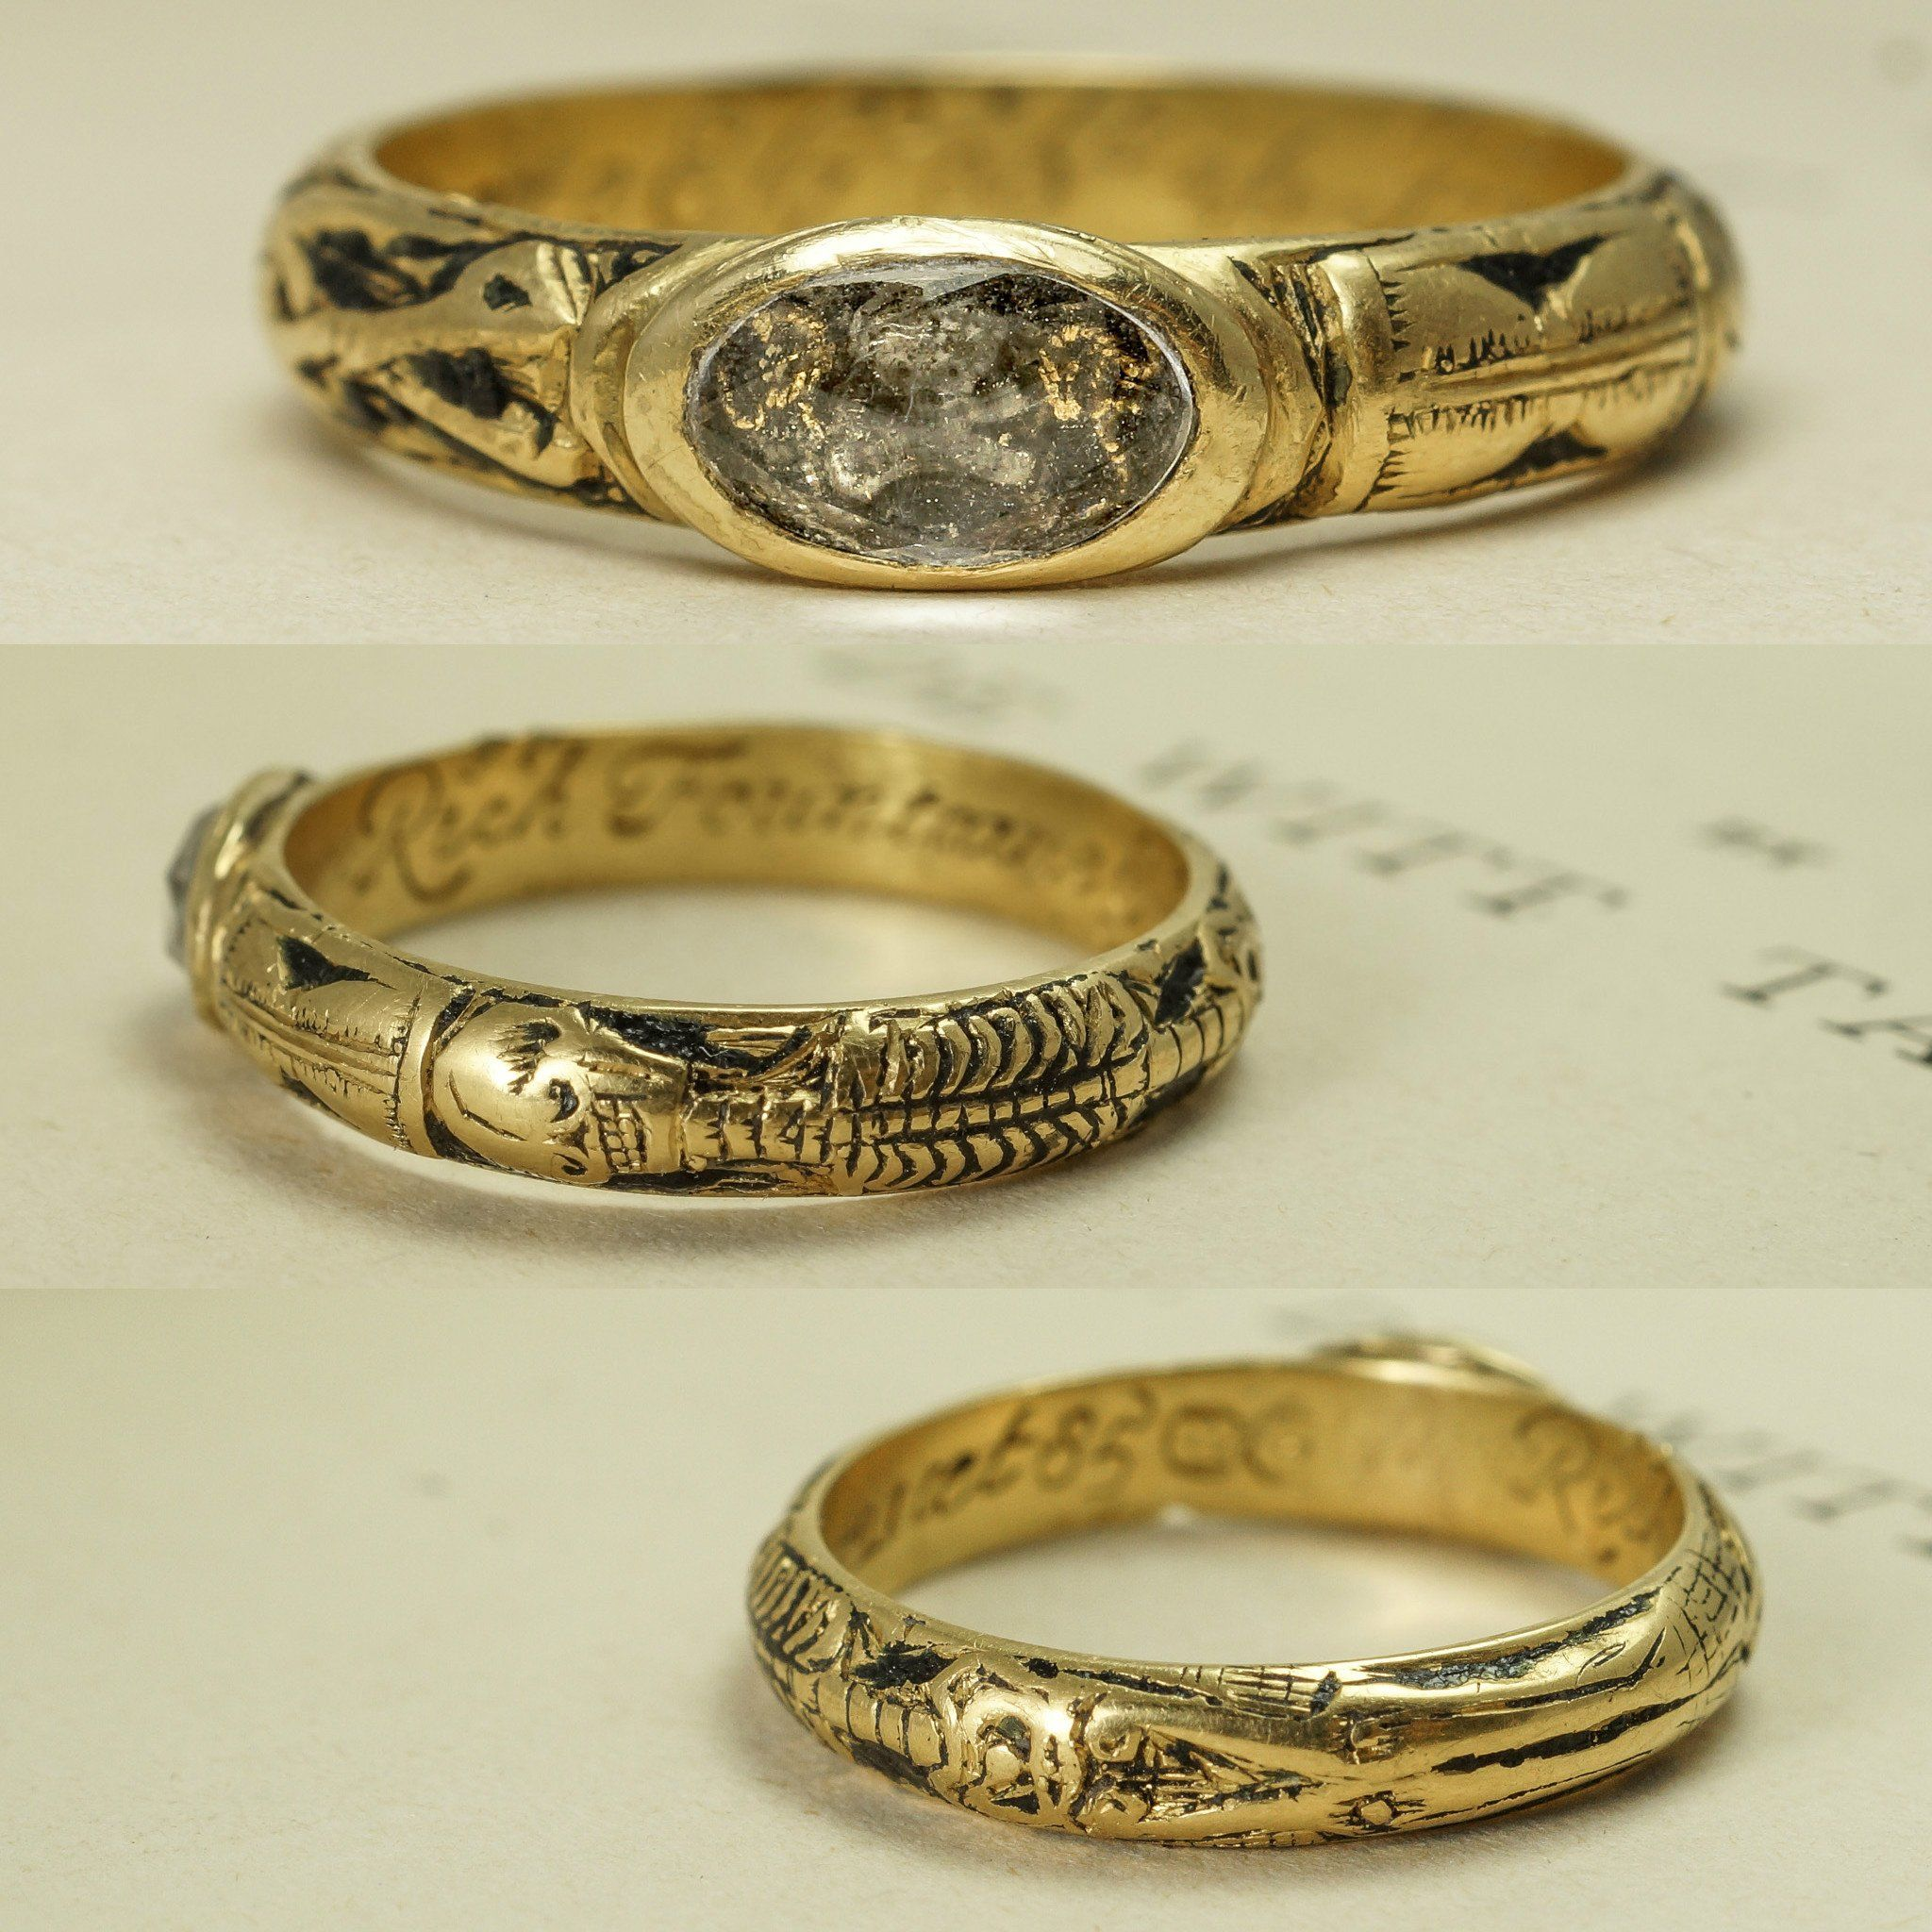 Georgian Skeletal Mourning Ring with Skull and Cipher